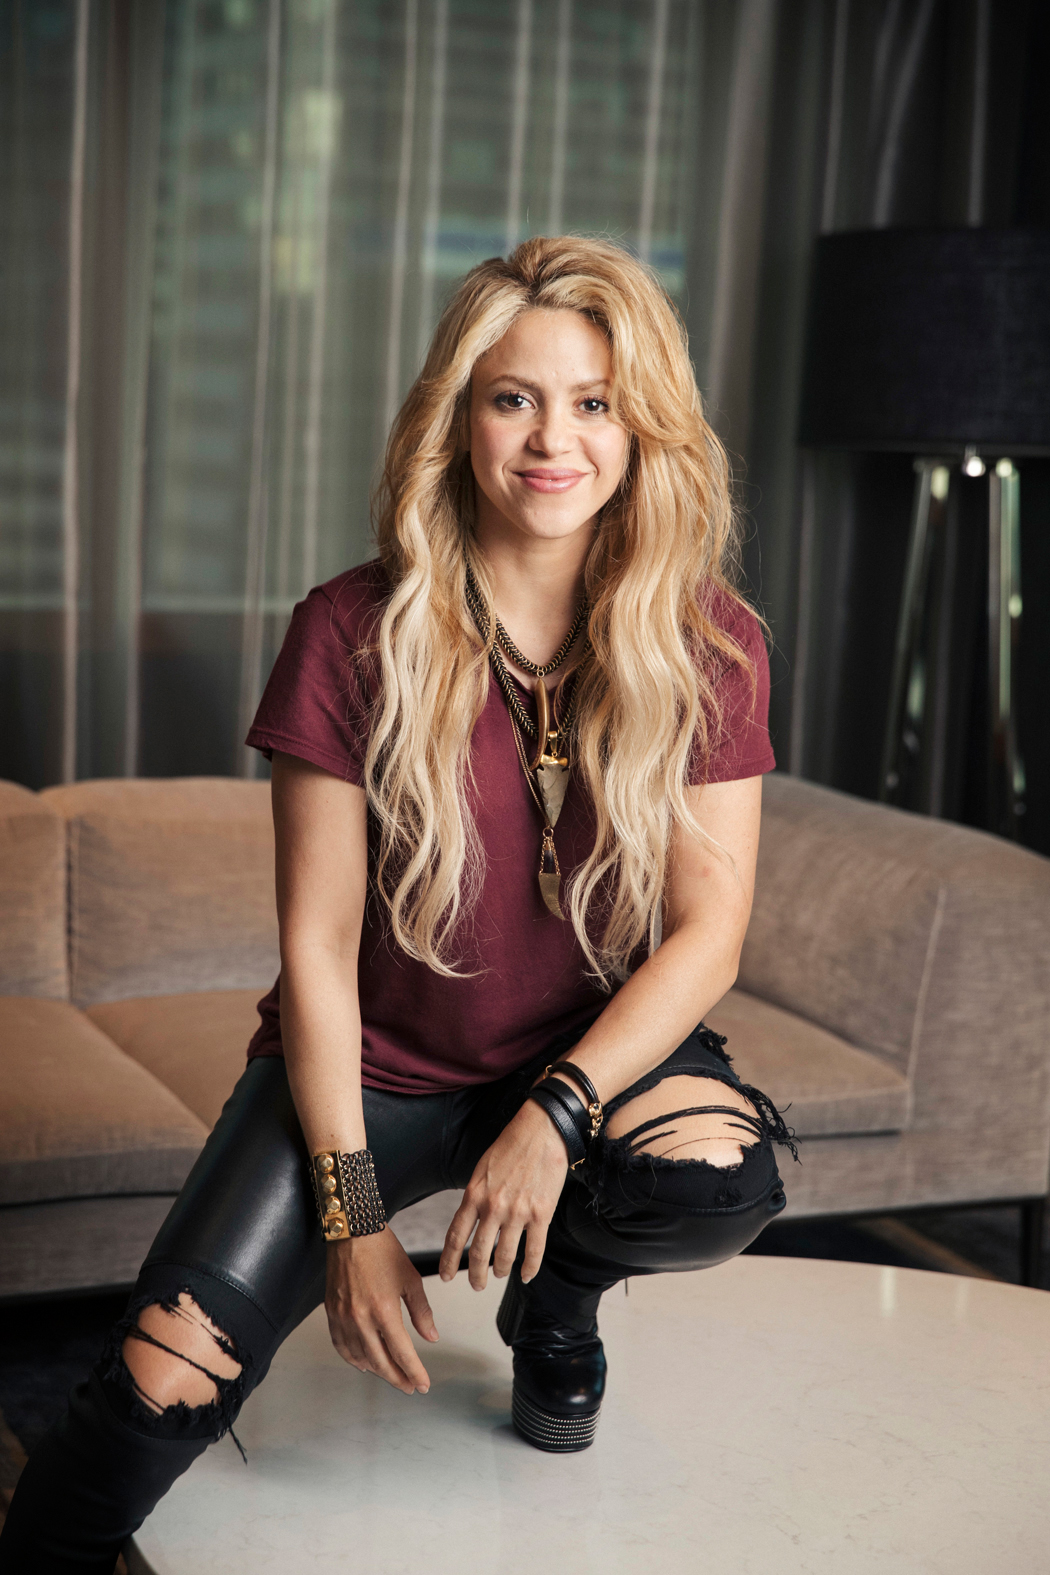 """FILE - In this May 16, 2017 photo, Colombian performer Shakira poses for a portrait in New York to promote her 11th album """"El Dorado"""". Shakira leads nominations to Latin American Music Awards with 9 nods, followed by Maluma with 8. ÒDespacitoÕÓs hit-makers Luis Fonsi and Daddy Yankee got 5 noms each.  (Photo by Victoria WIll/Invision/AP)"""